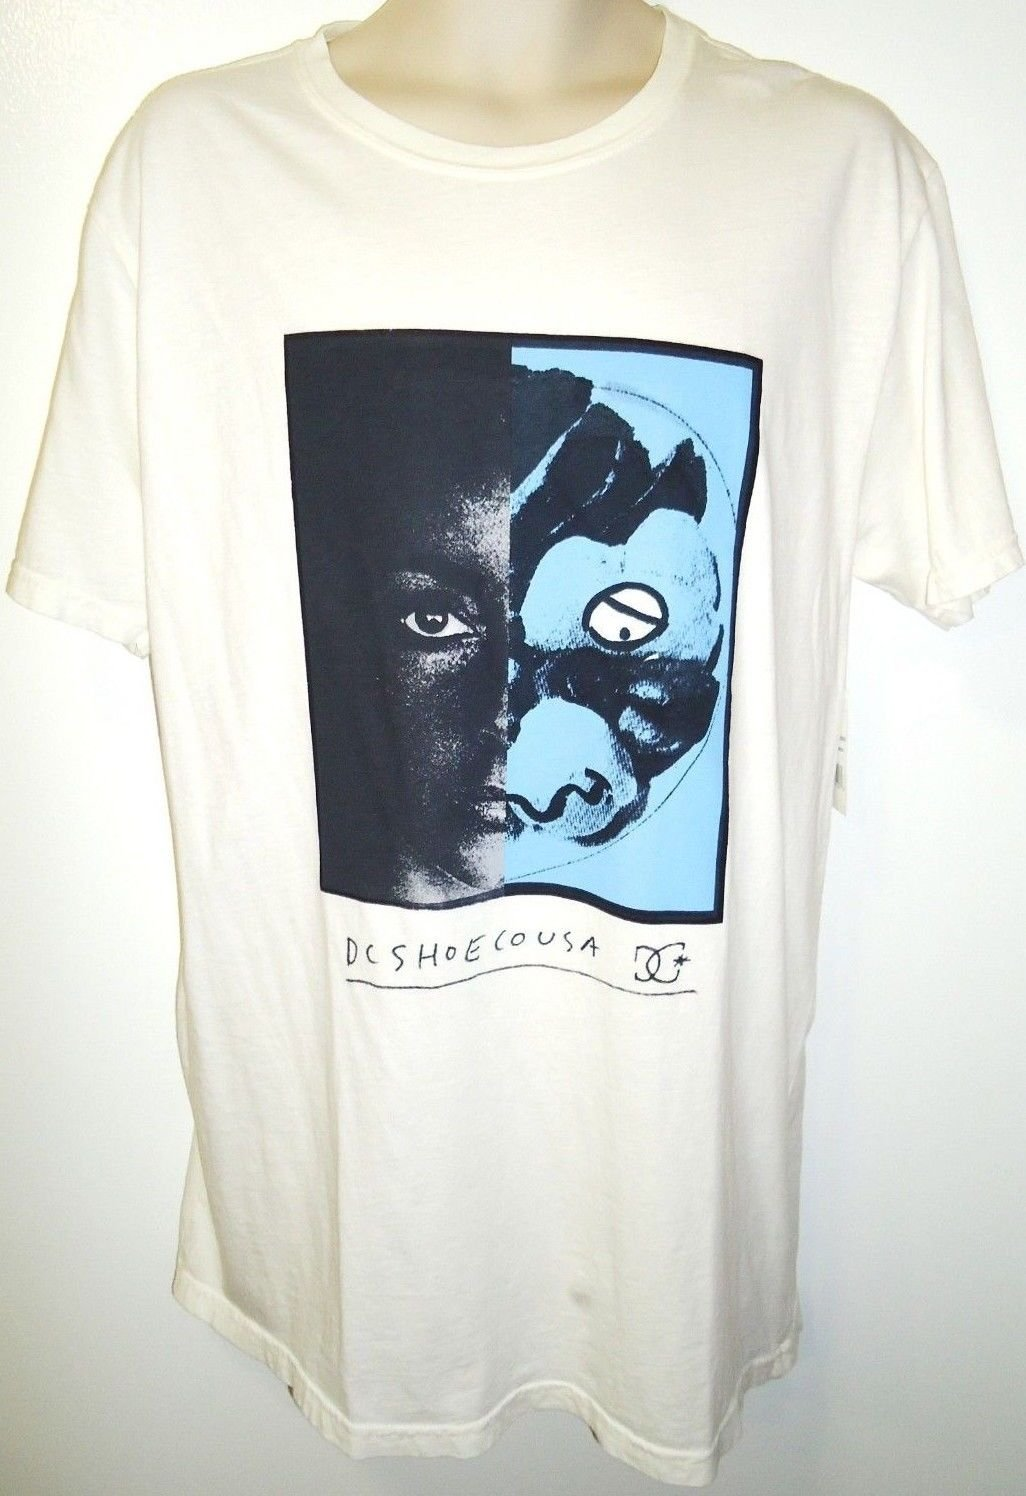 DC SHOES - MIKEY TAYLOR - WHITE - T-SHIRT - LARGE - NEW - SKATEBOARD - SURFING